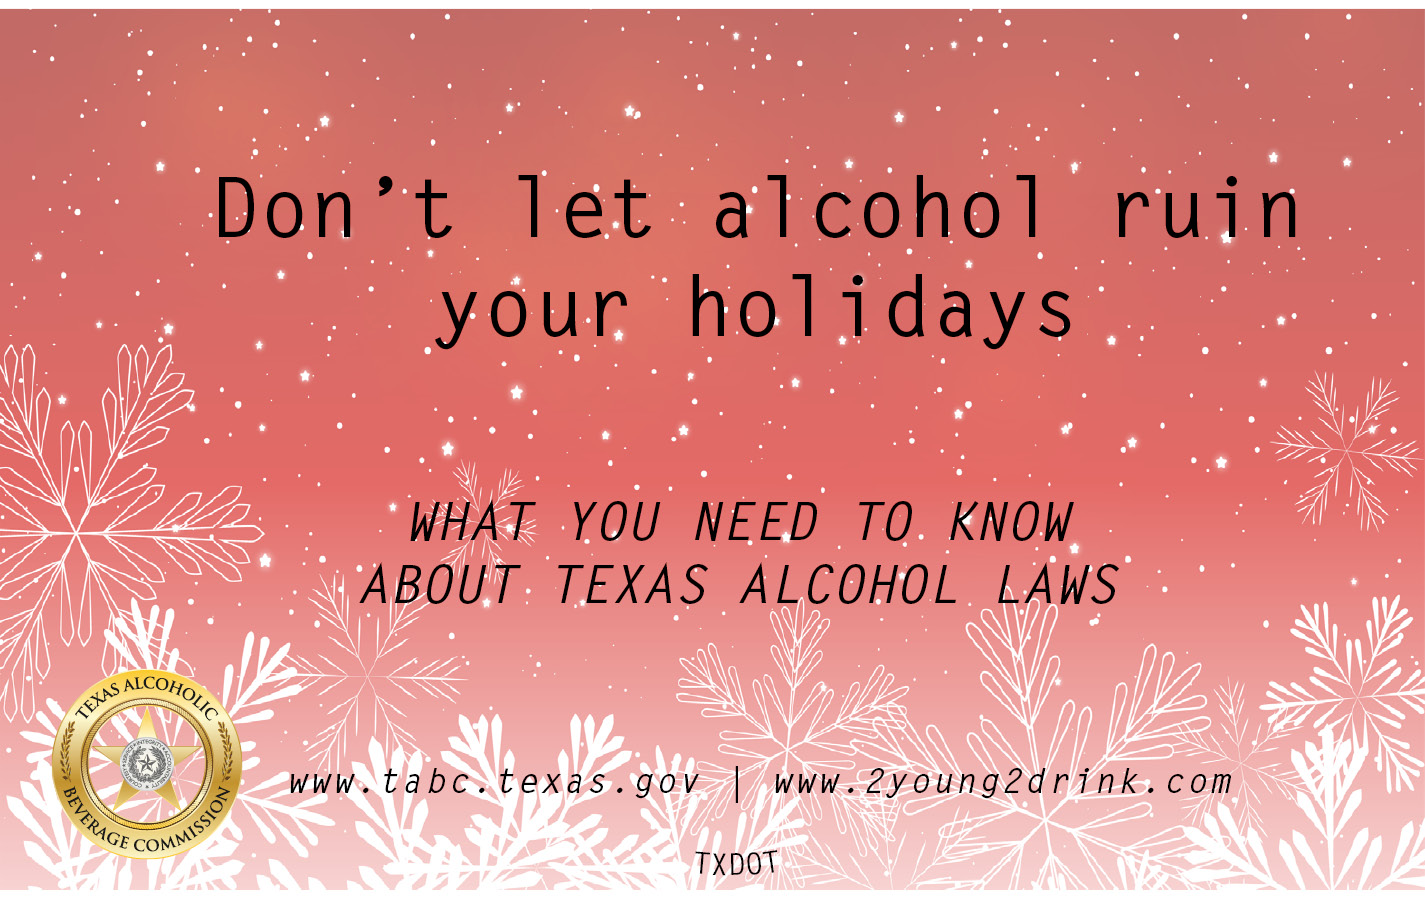 Holiday Alcohol Laws Booklet